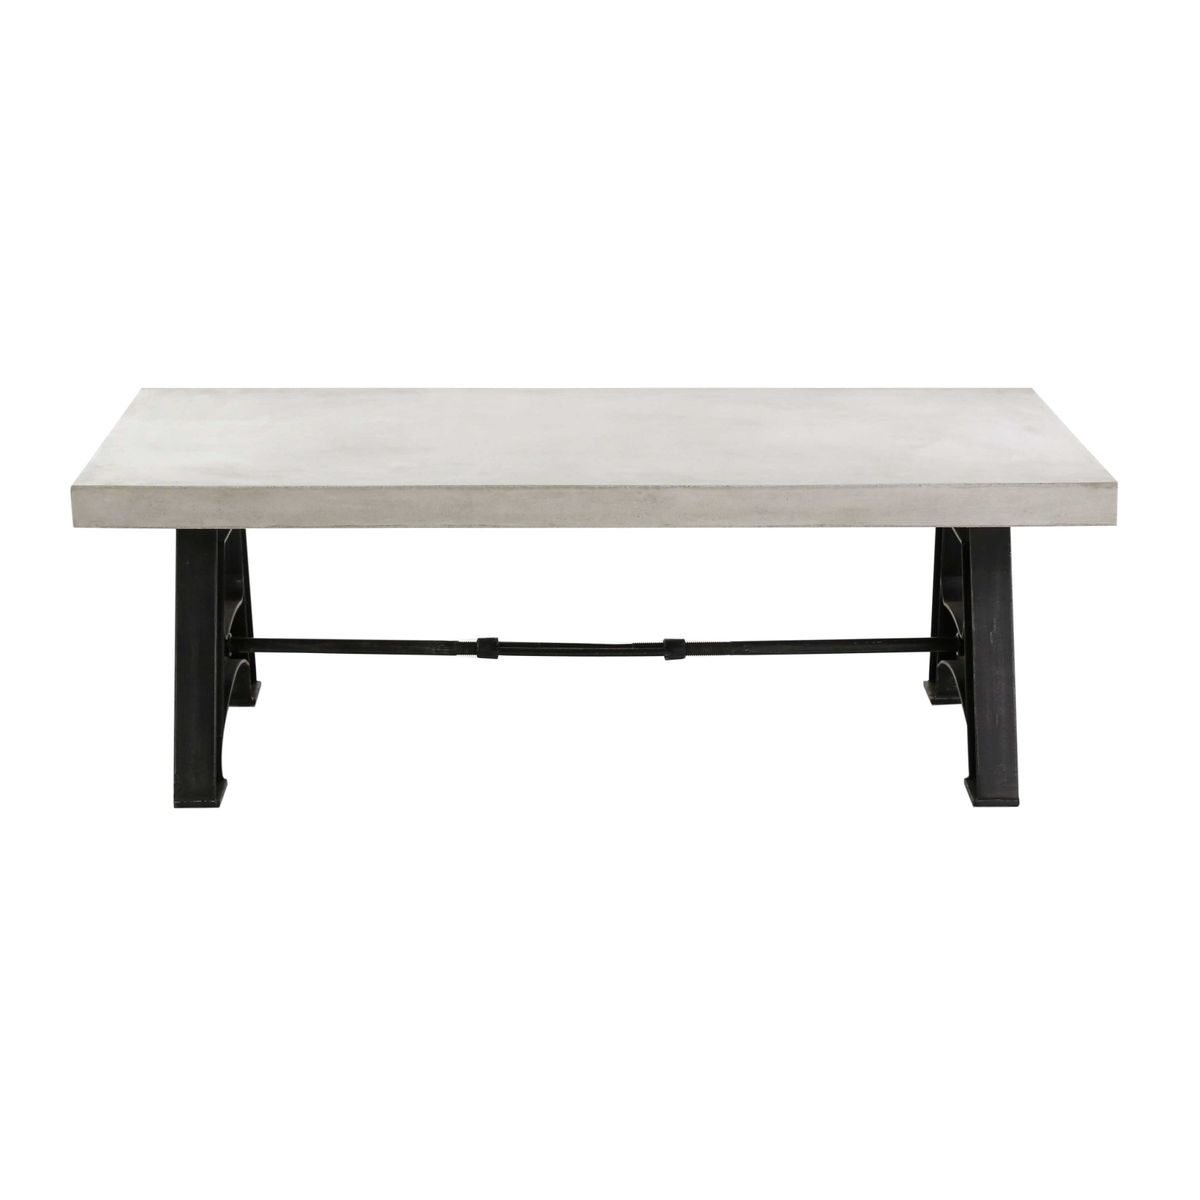 table basse b ton cir et m tal design rectangulaire zago store. Black Bedroom Furniture Sets. Home Design Ideas